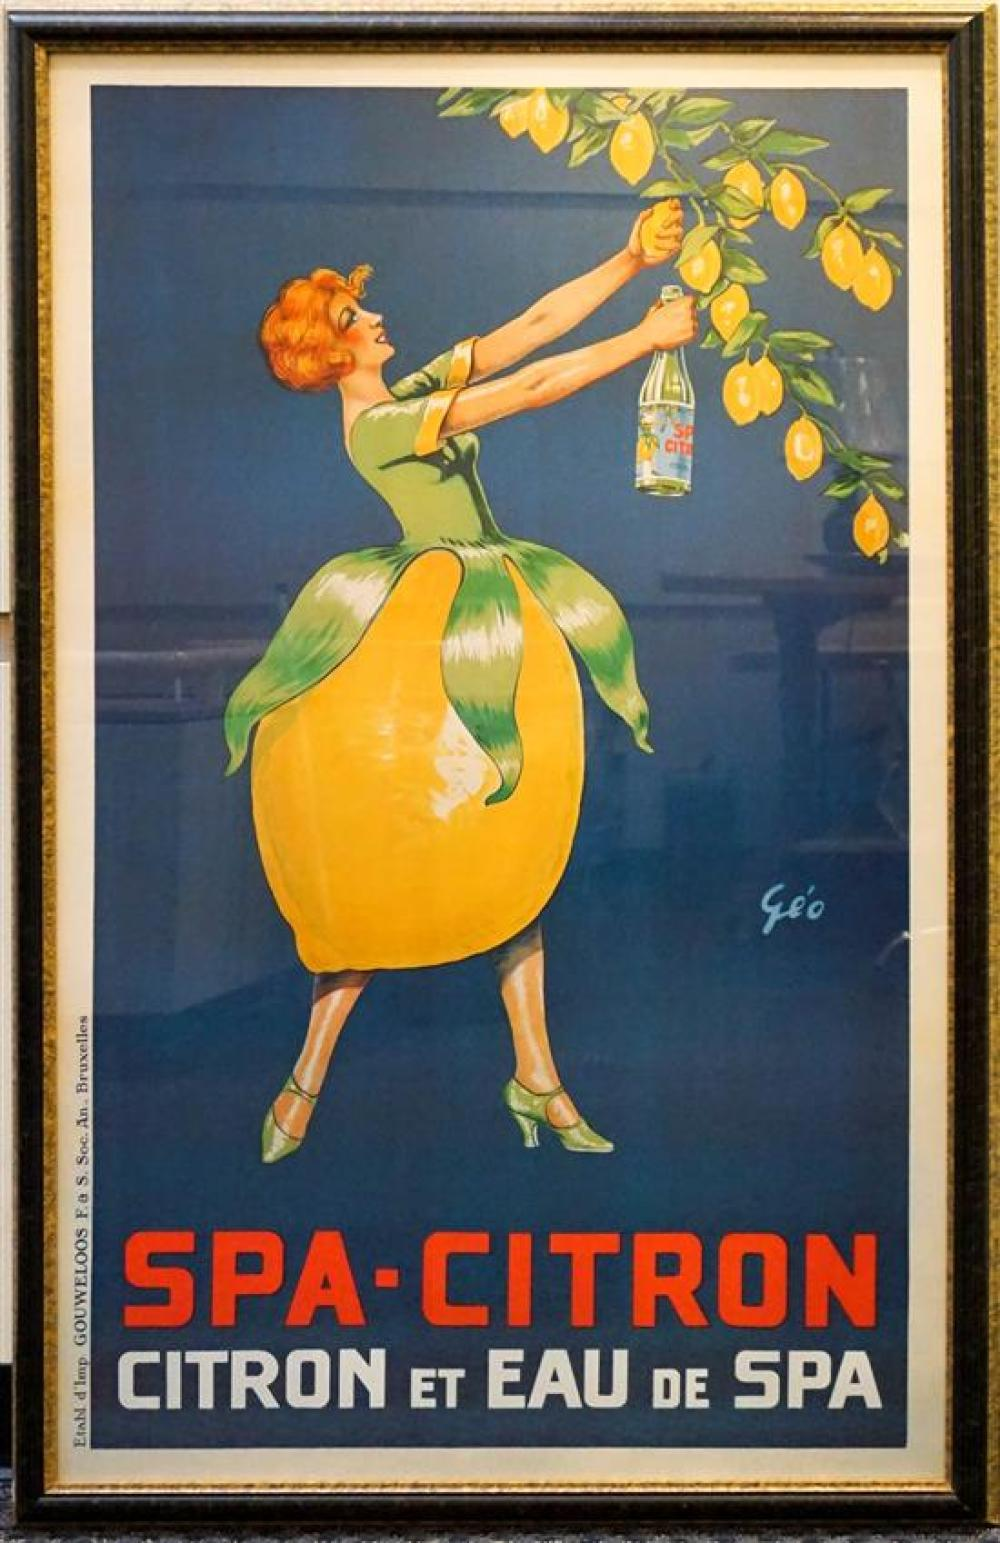 Framed Spa-Citron Reproduction Poster, Frame: 57 x 37-1/2 in